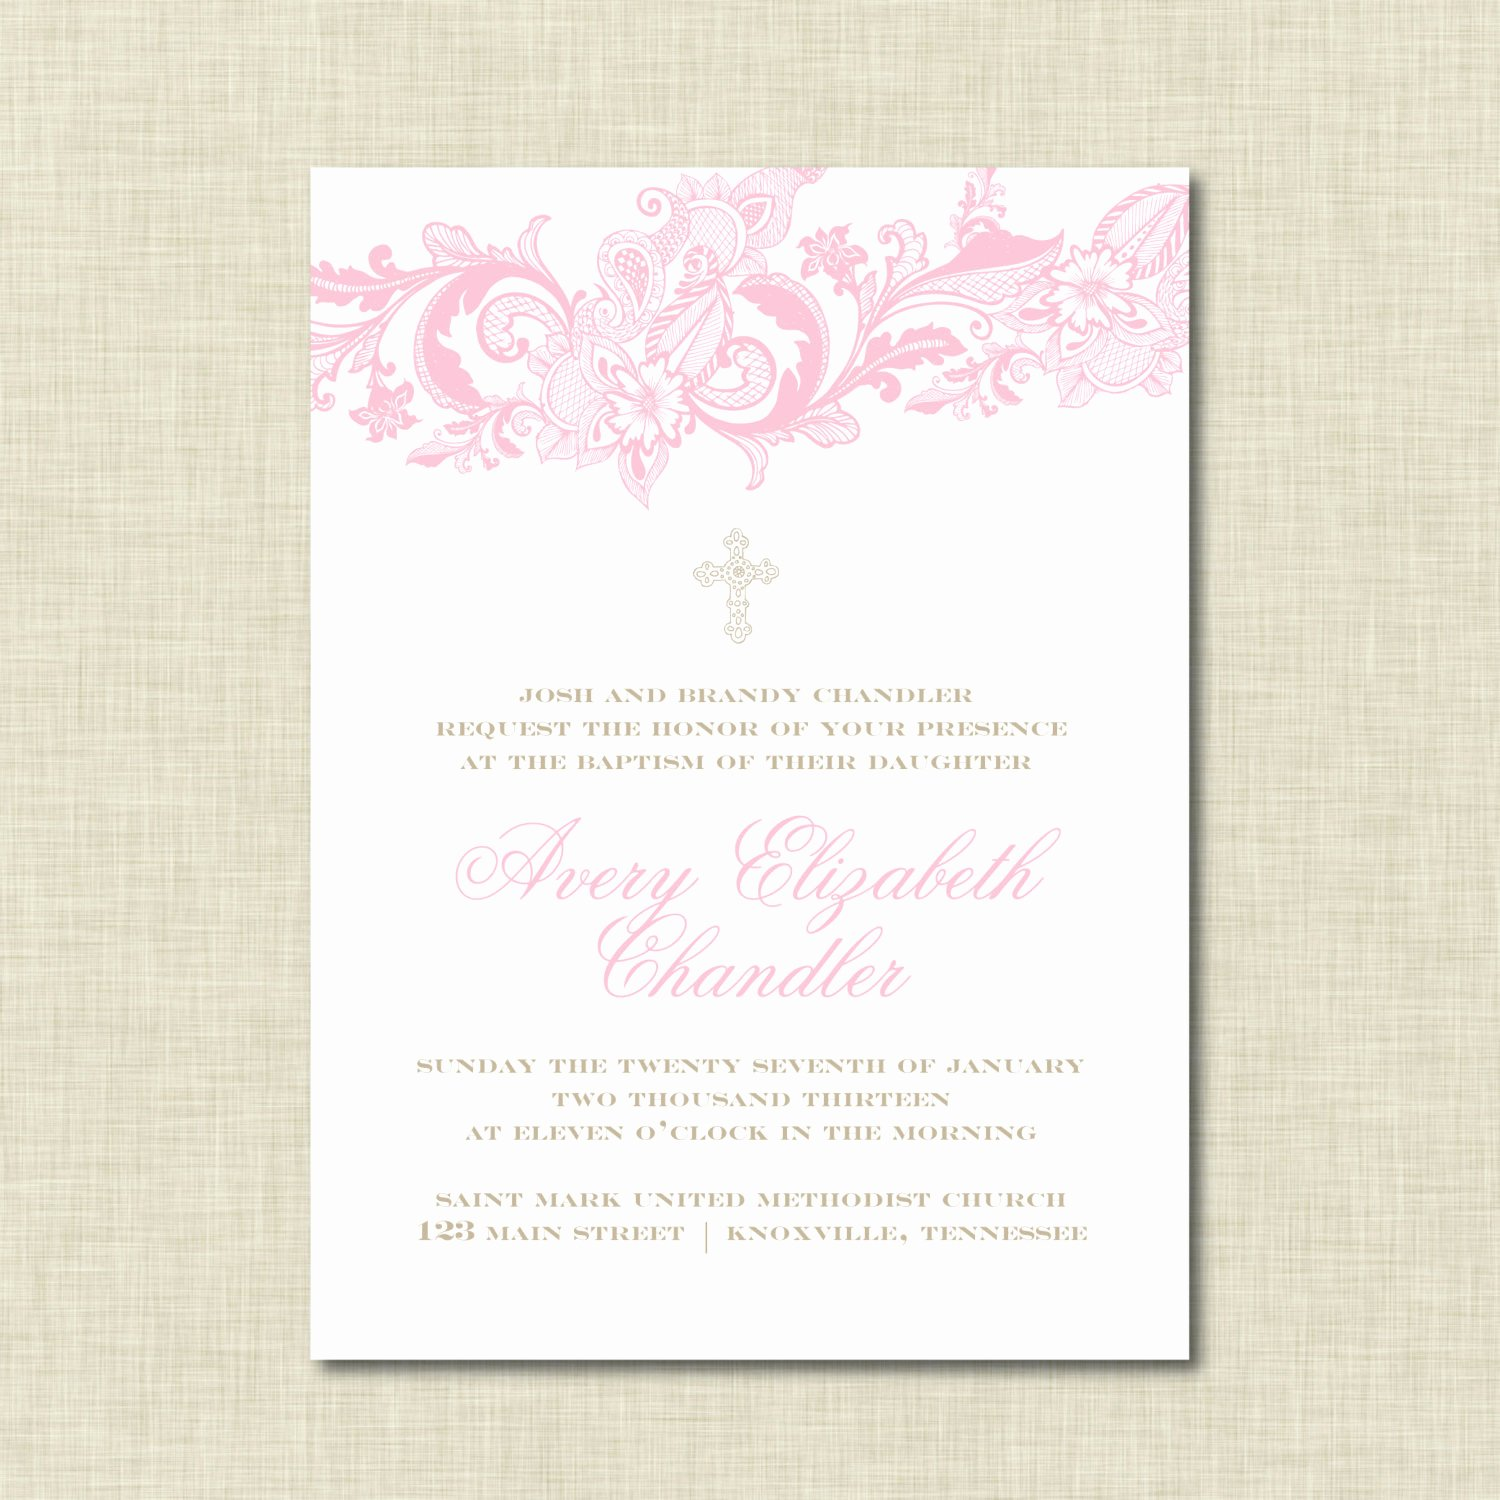 Baptism Invitation Template Free Download Beautiful Baptism Invitations Baptism Invitations for Girls